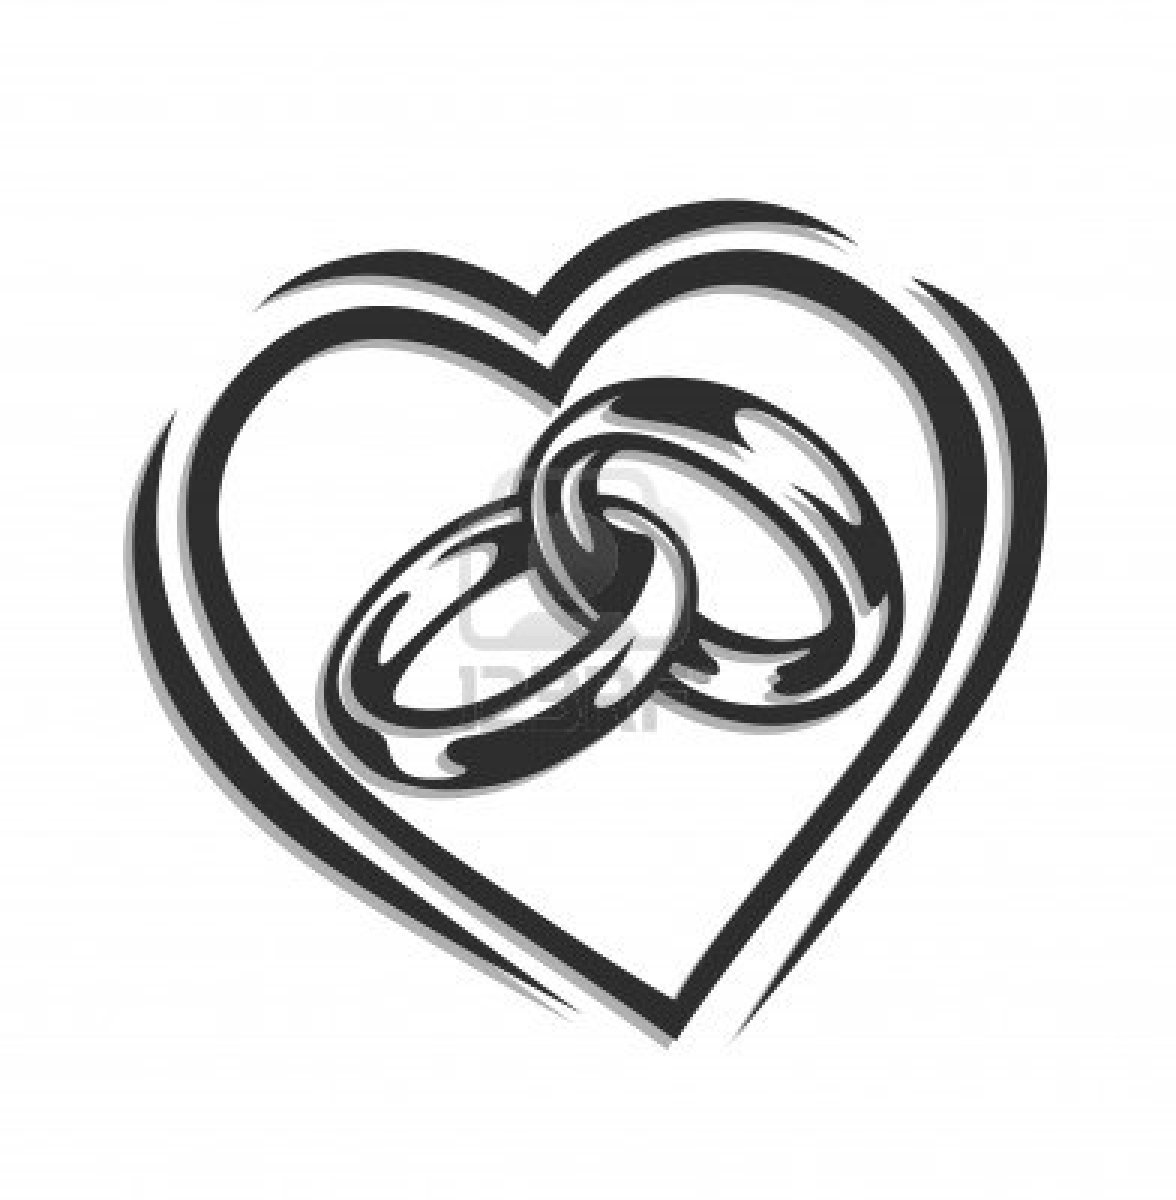 wedding20ring20clipart - Black And White Wedding Rings